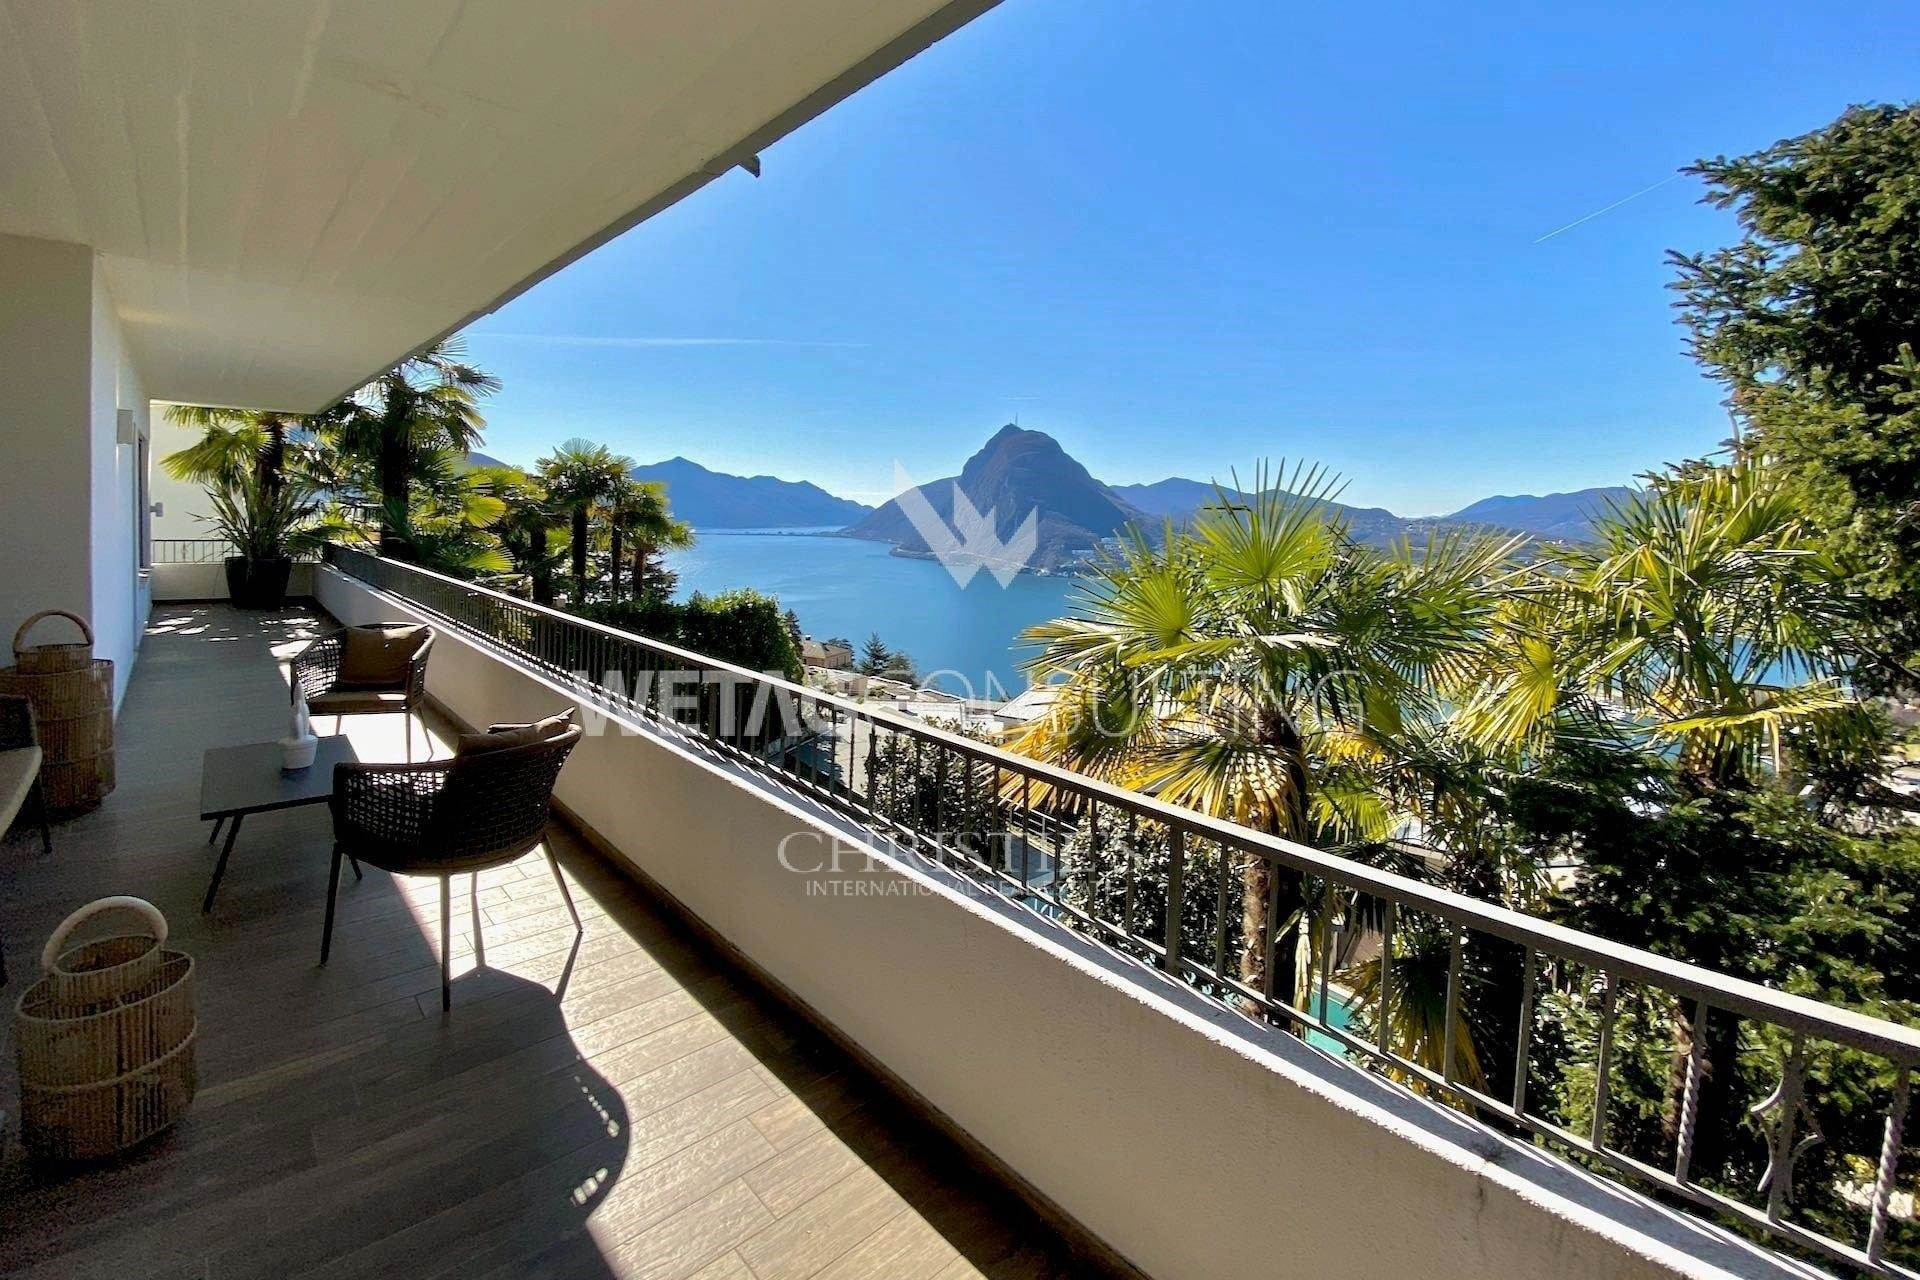 Apartamentos para Venda às Ruvigliana: modern apartment with beautiful Lake Lugano view for sale Ruvigliana, Ticino,6977 Suíça